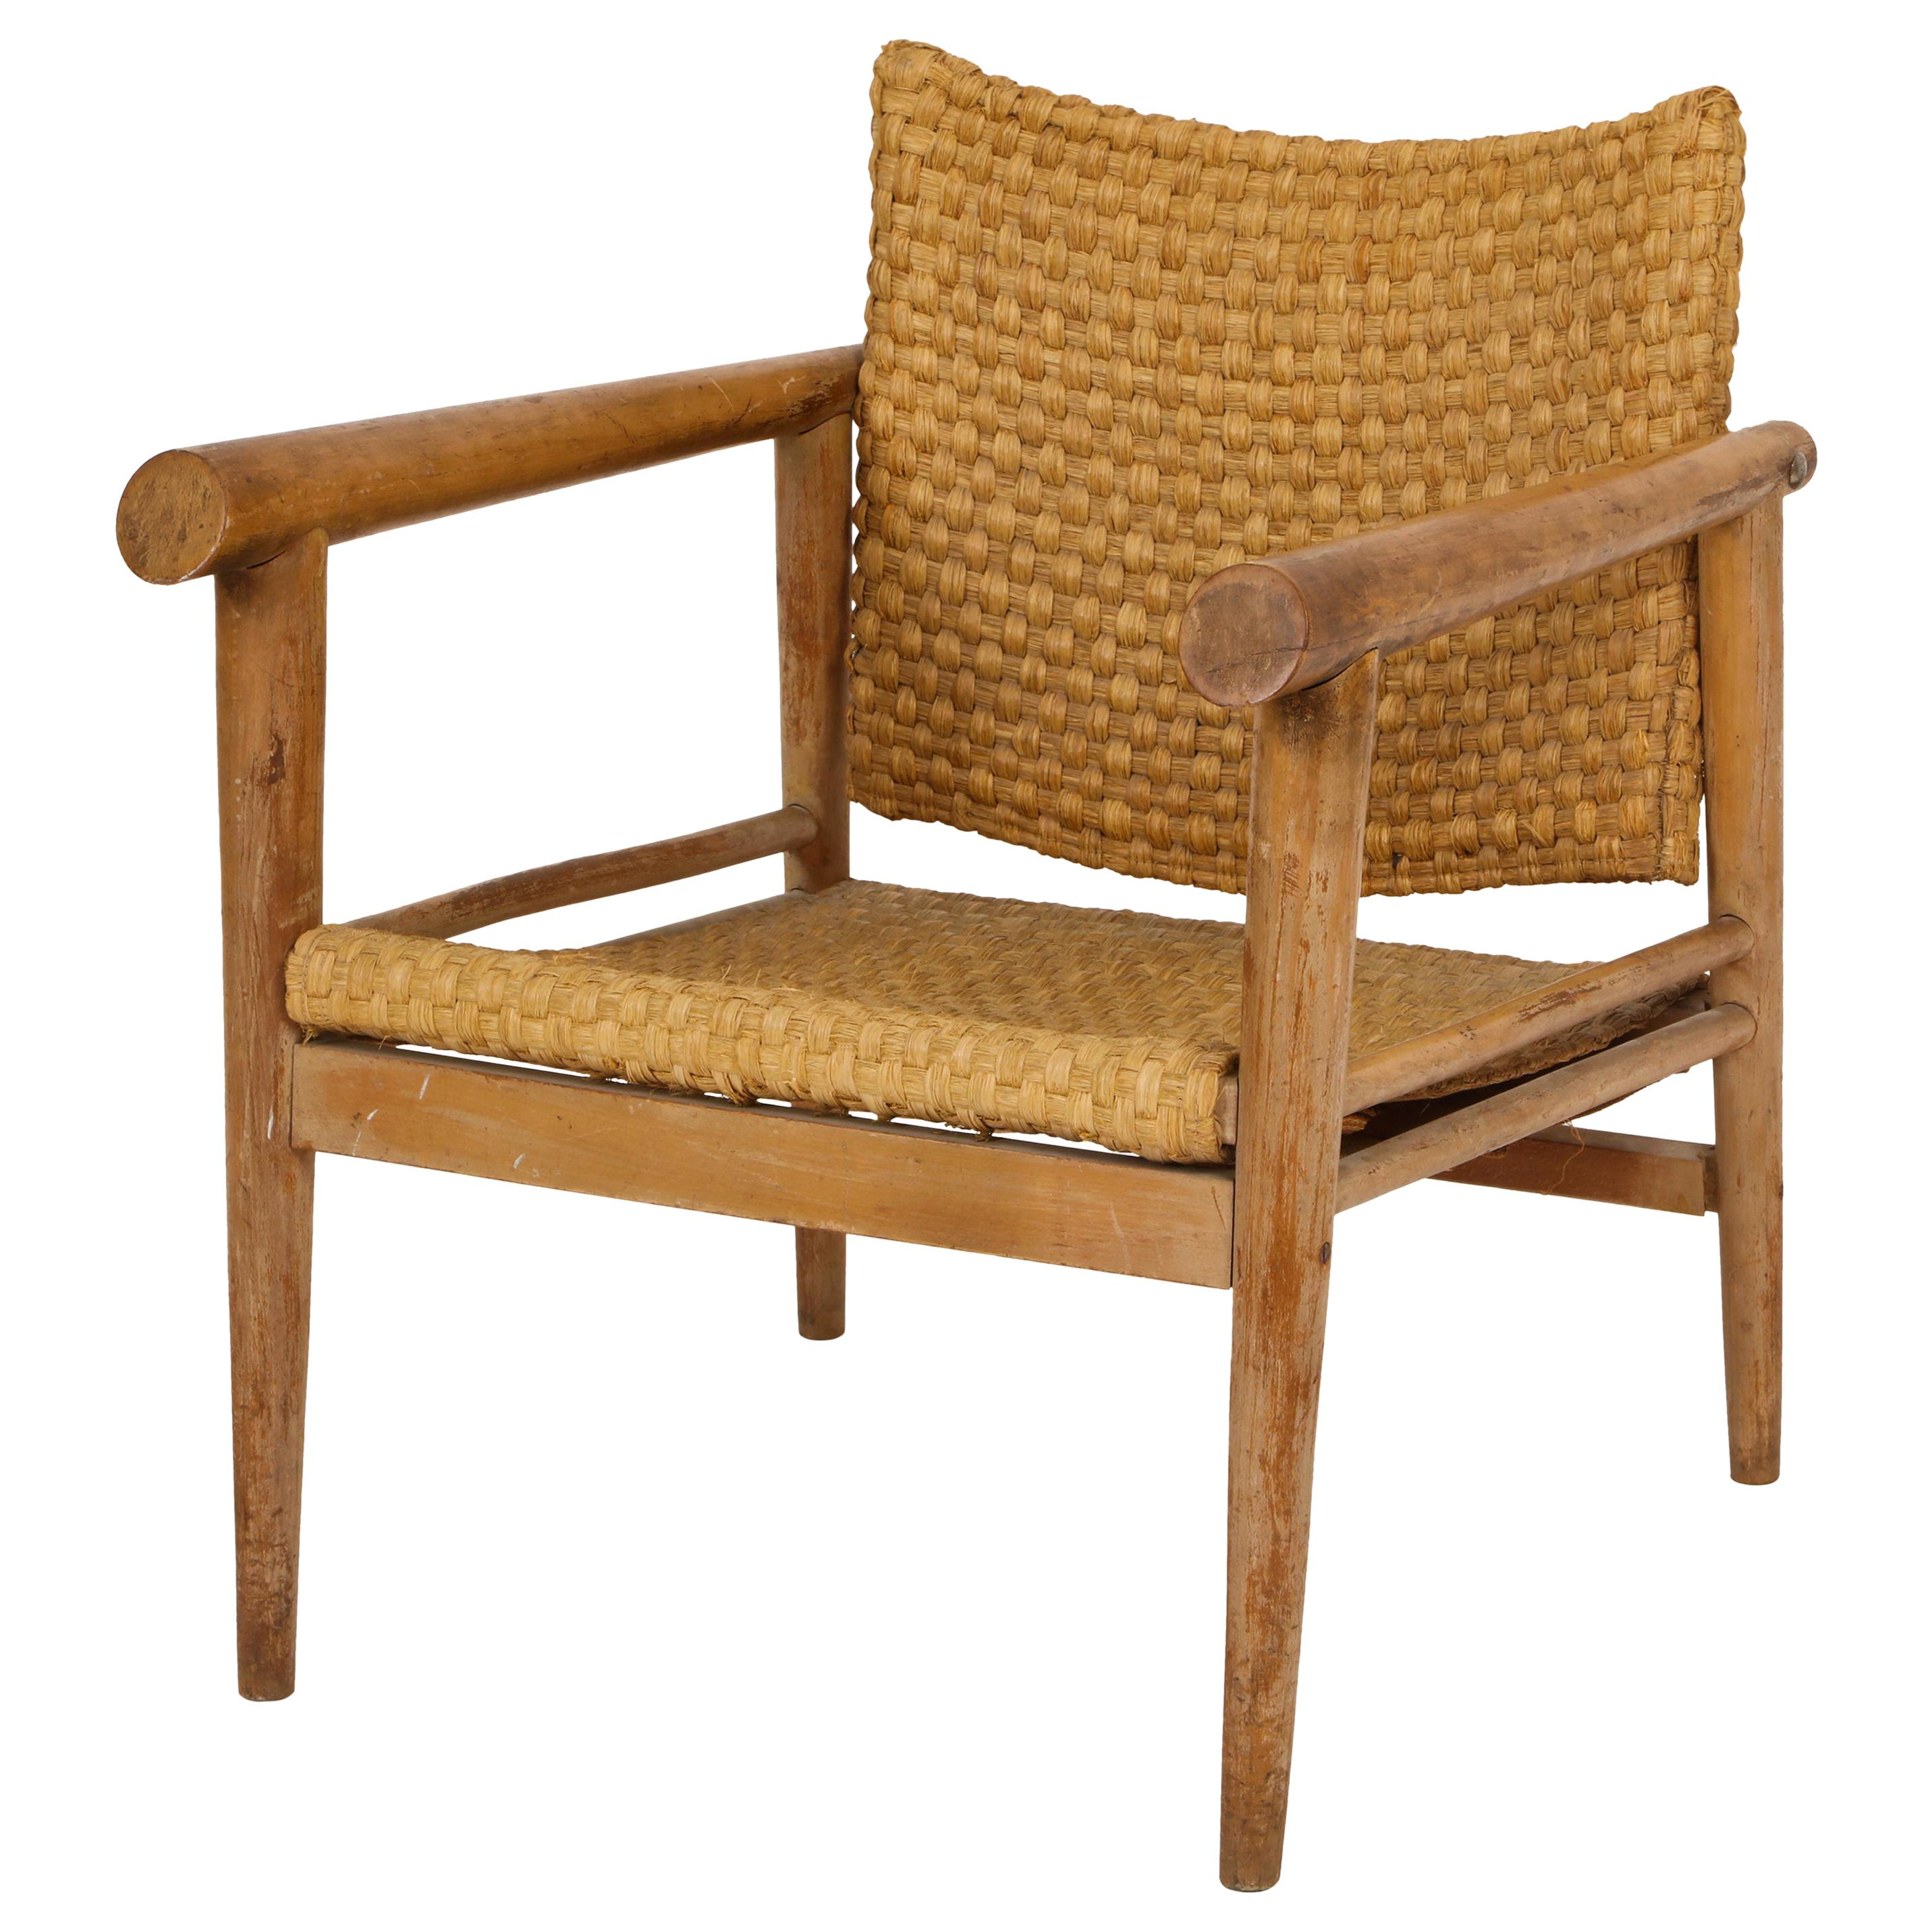 Straw Wicker Woven Rush Chair Midcentury Jean Michel Frank Style, 1930, France